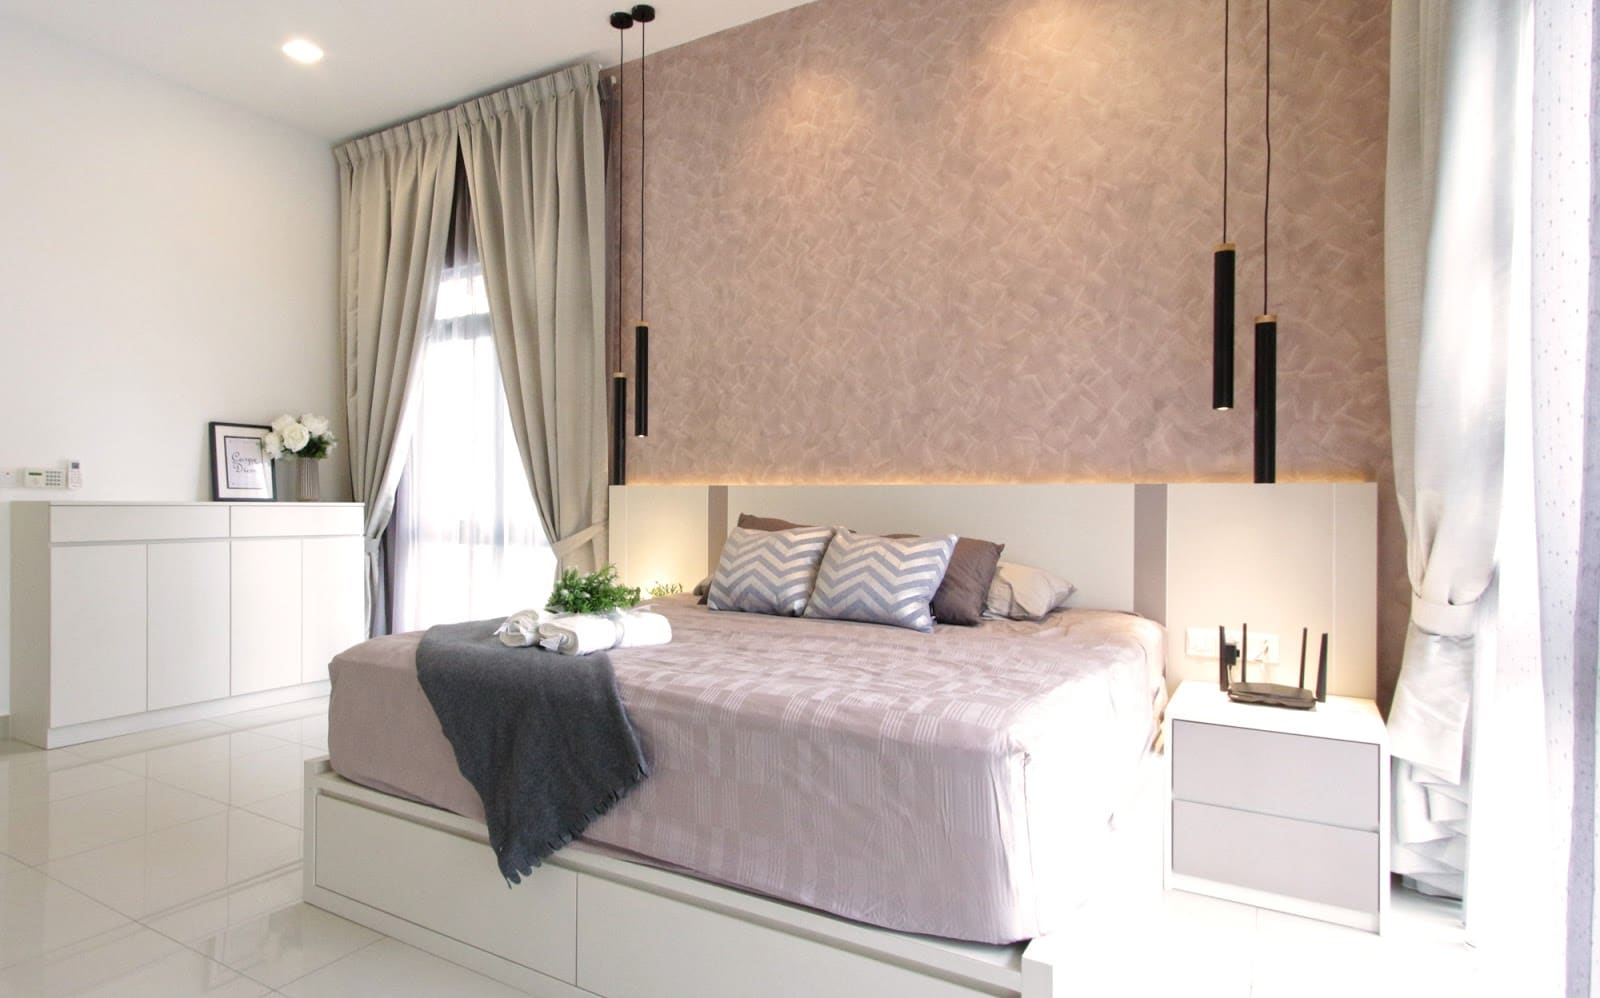 Above: Each of the bedrooms was coated with a different colour to inject some personalisation.